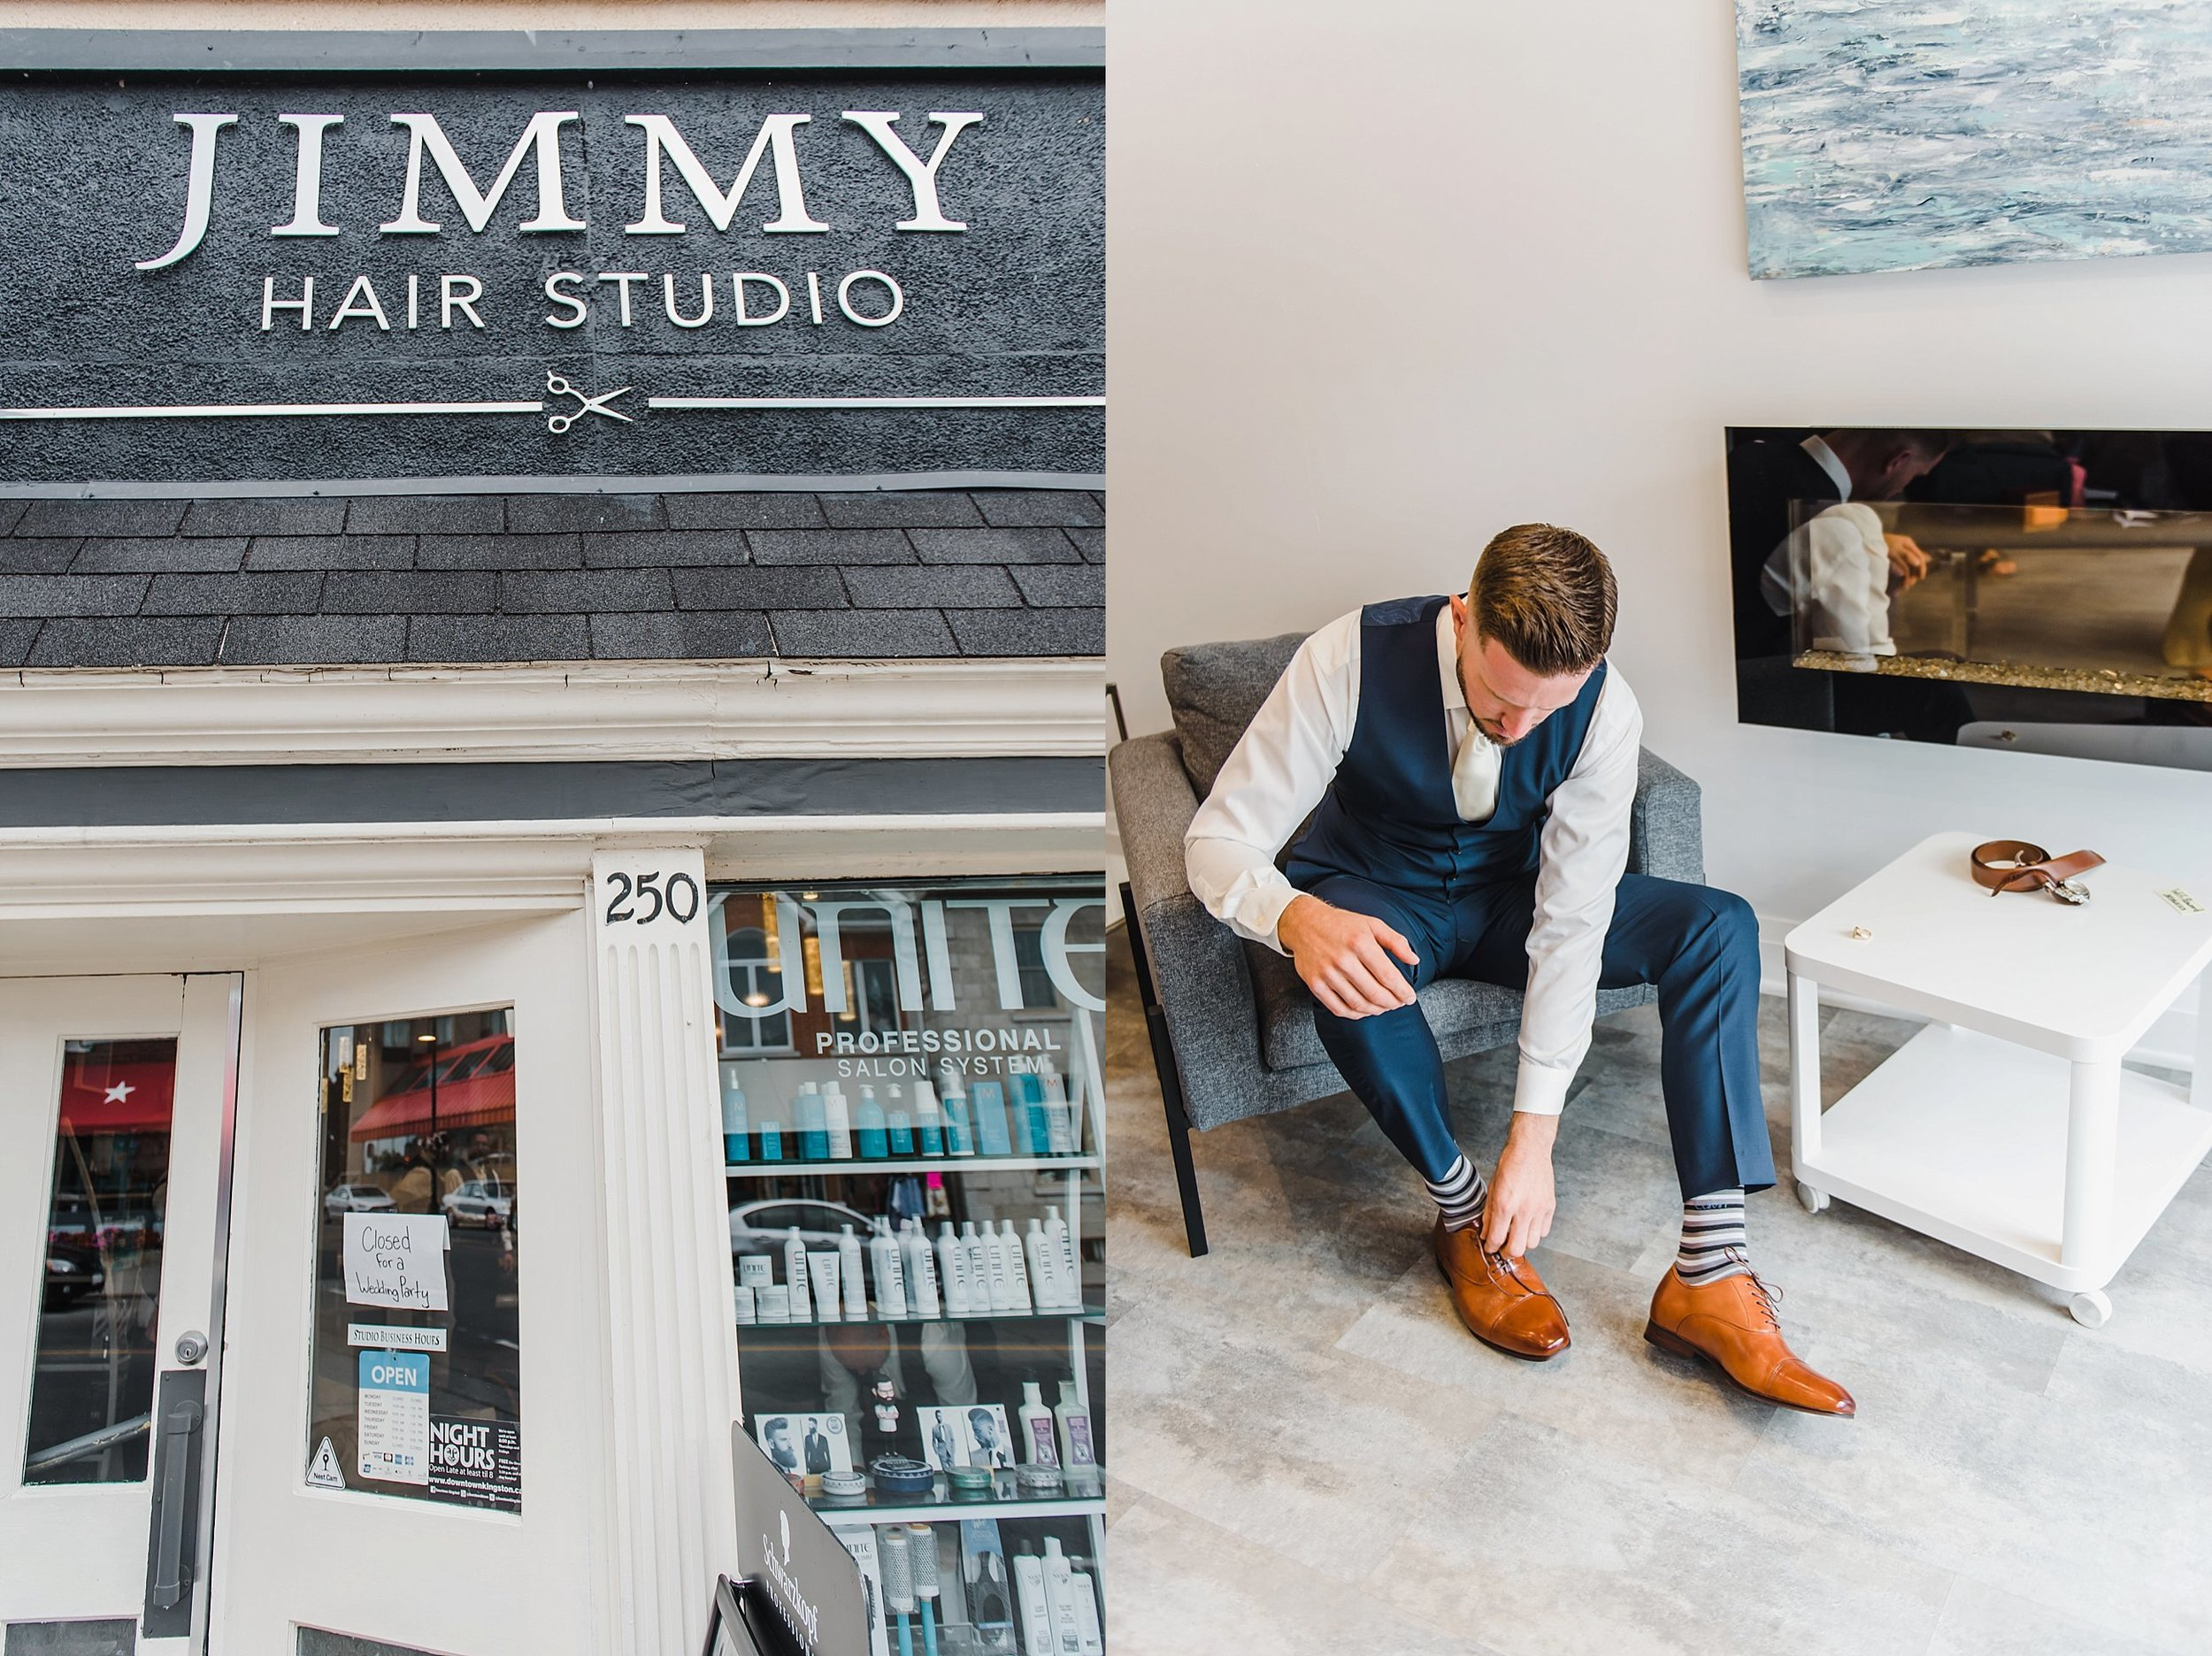 We loved how the guys got ready at their local barber shop, Jimmy Hair Studio.